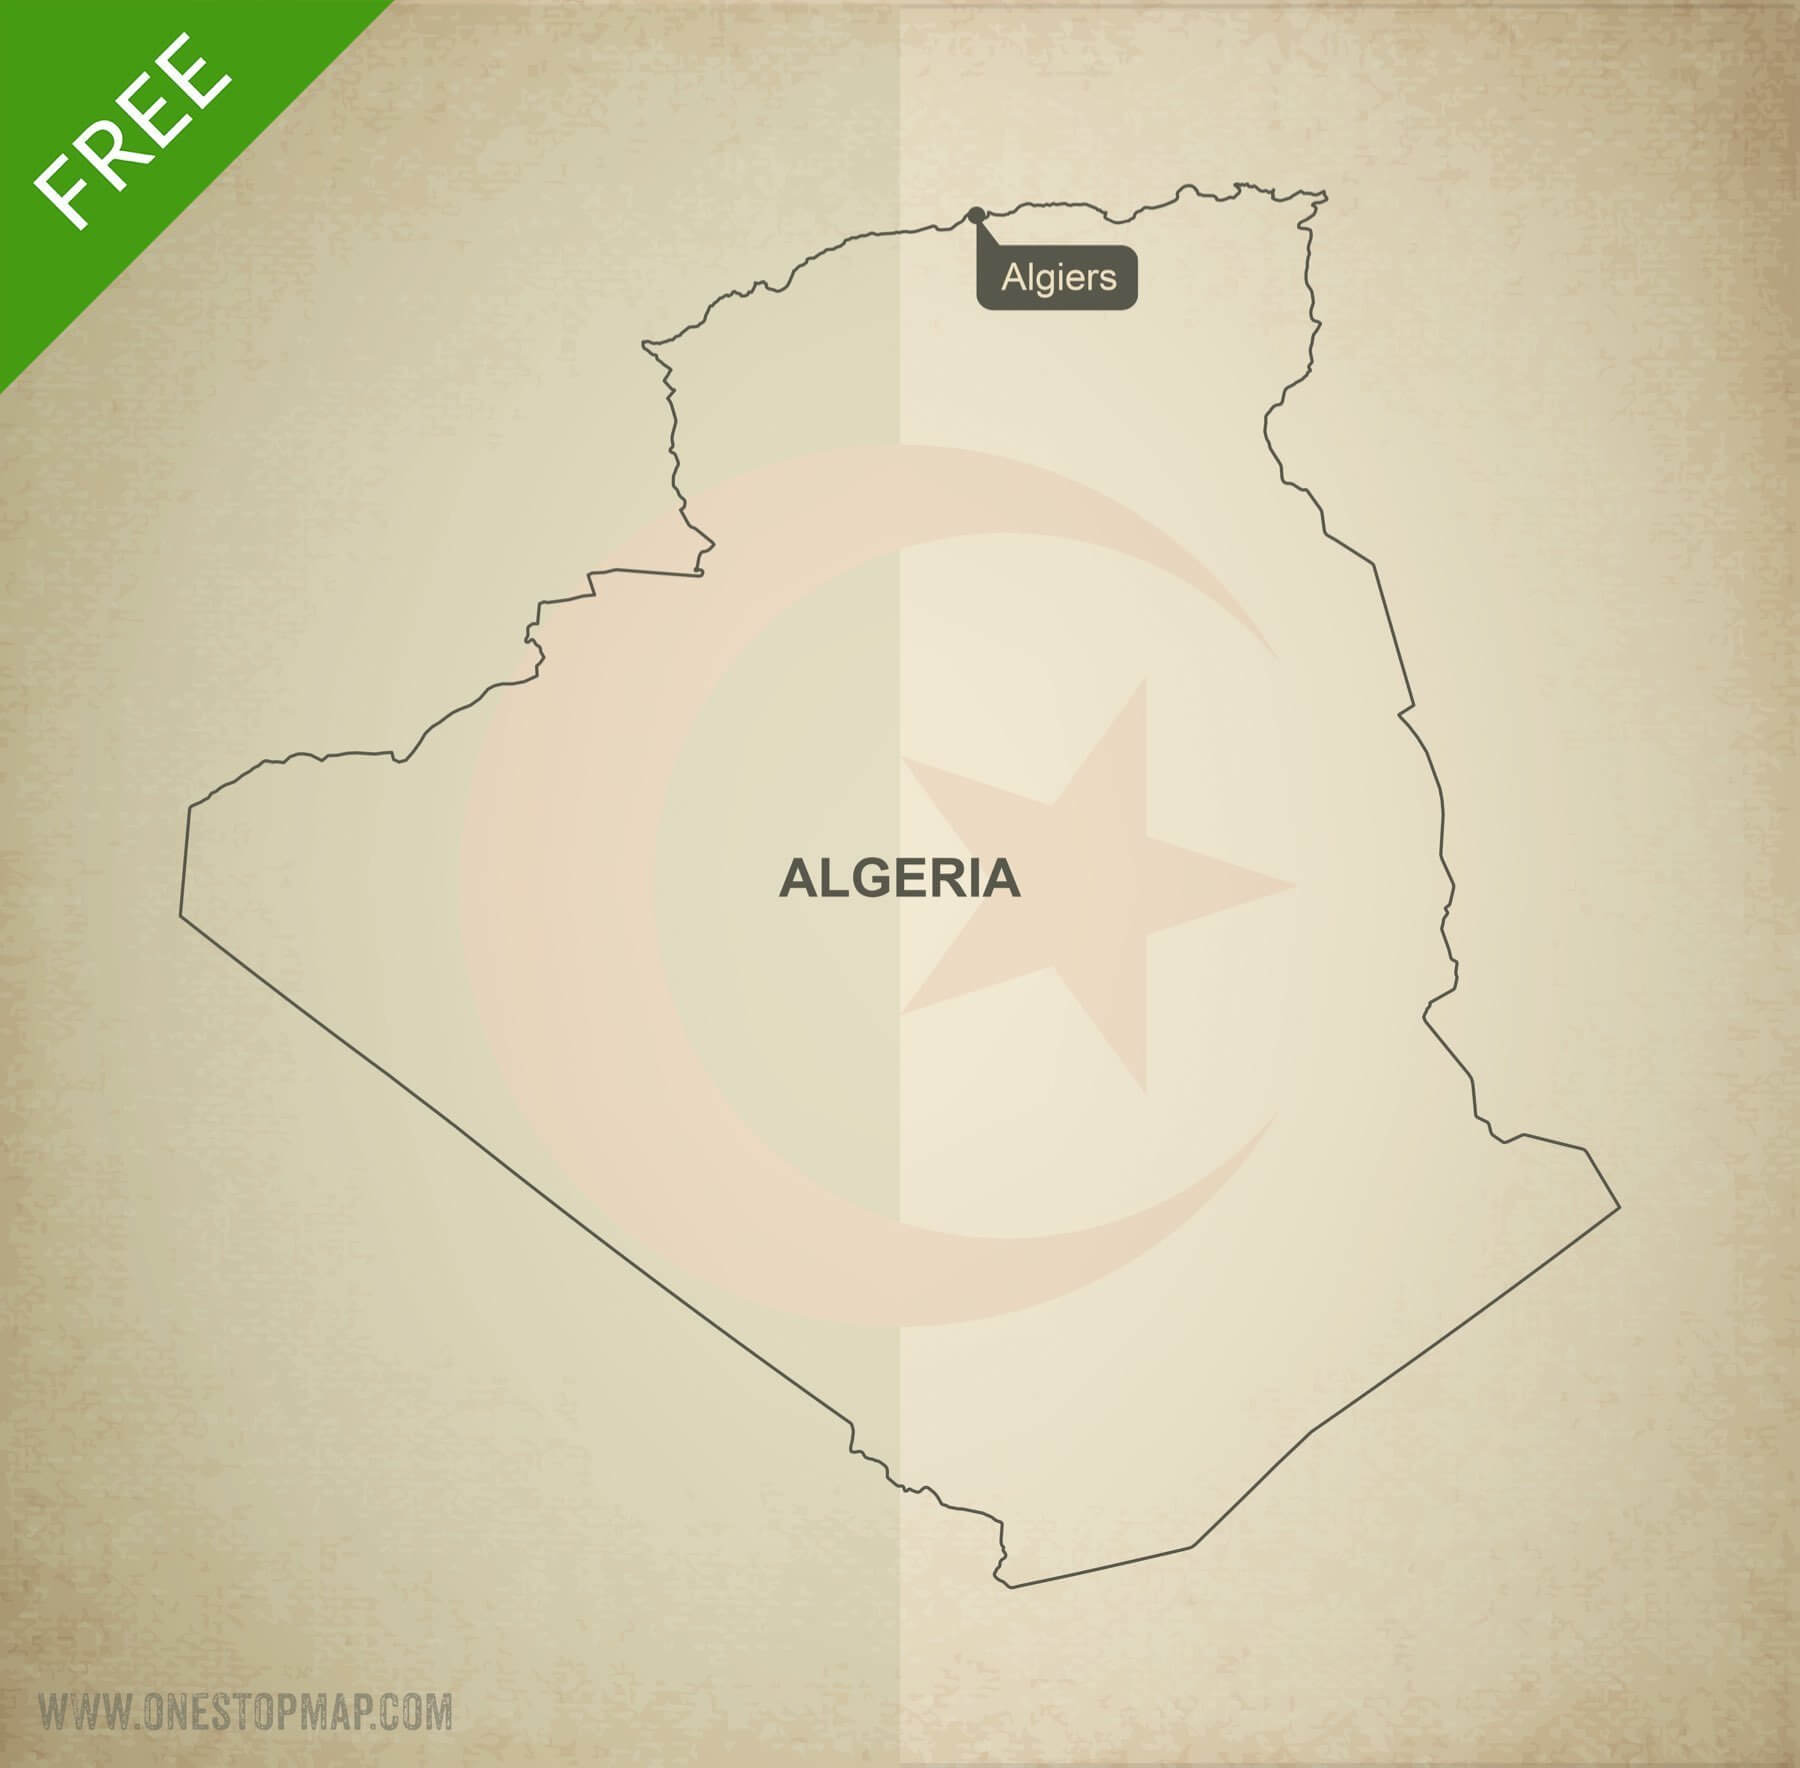 Free vector map of Algeria outline